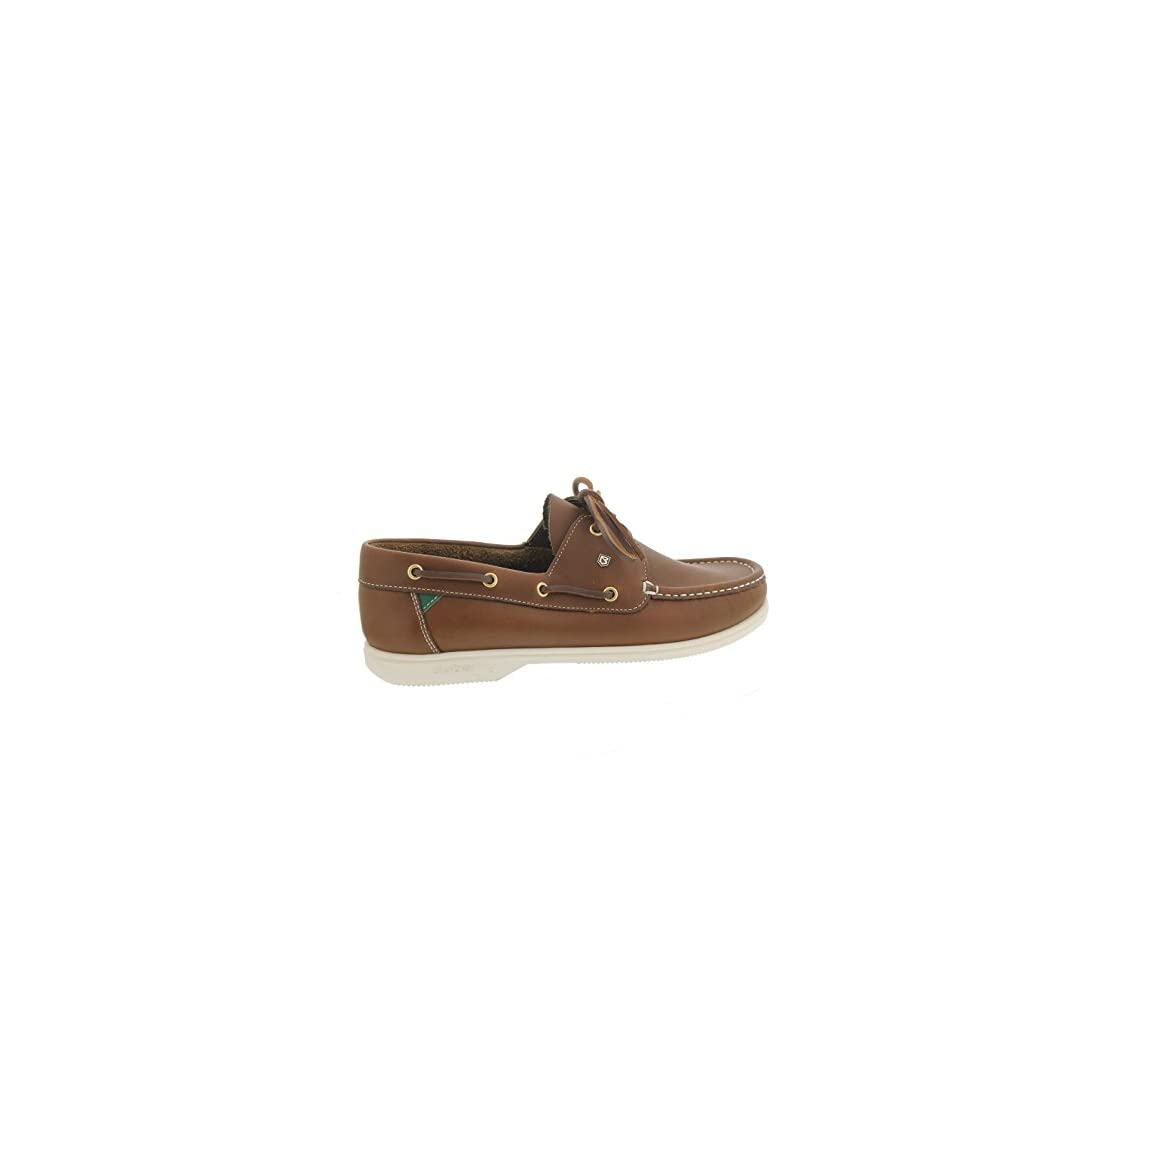 333102 Brown Strisce Ammiraglio Dubarry Leather